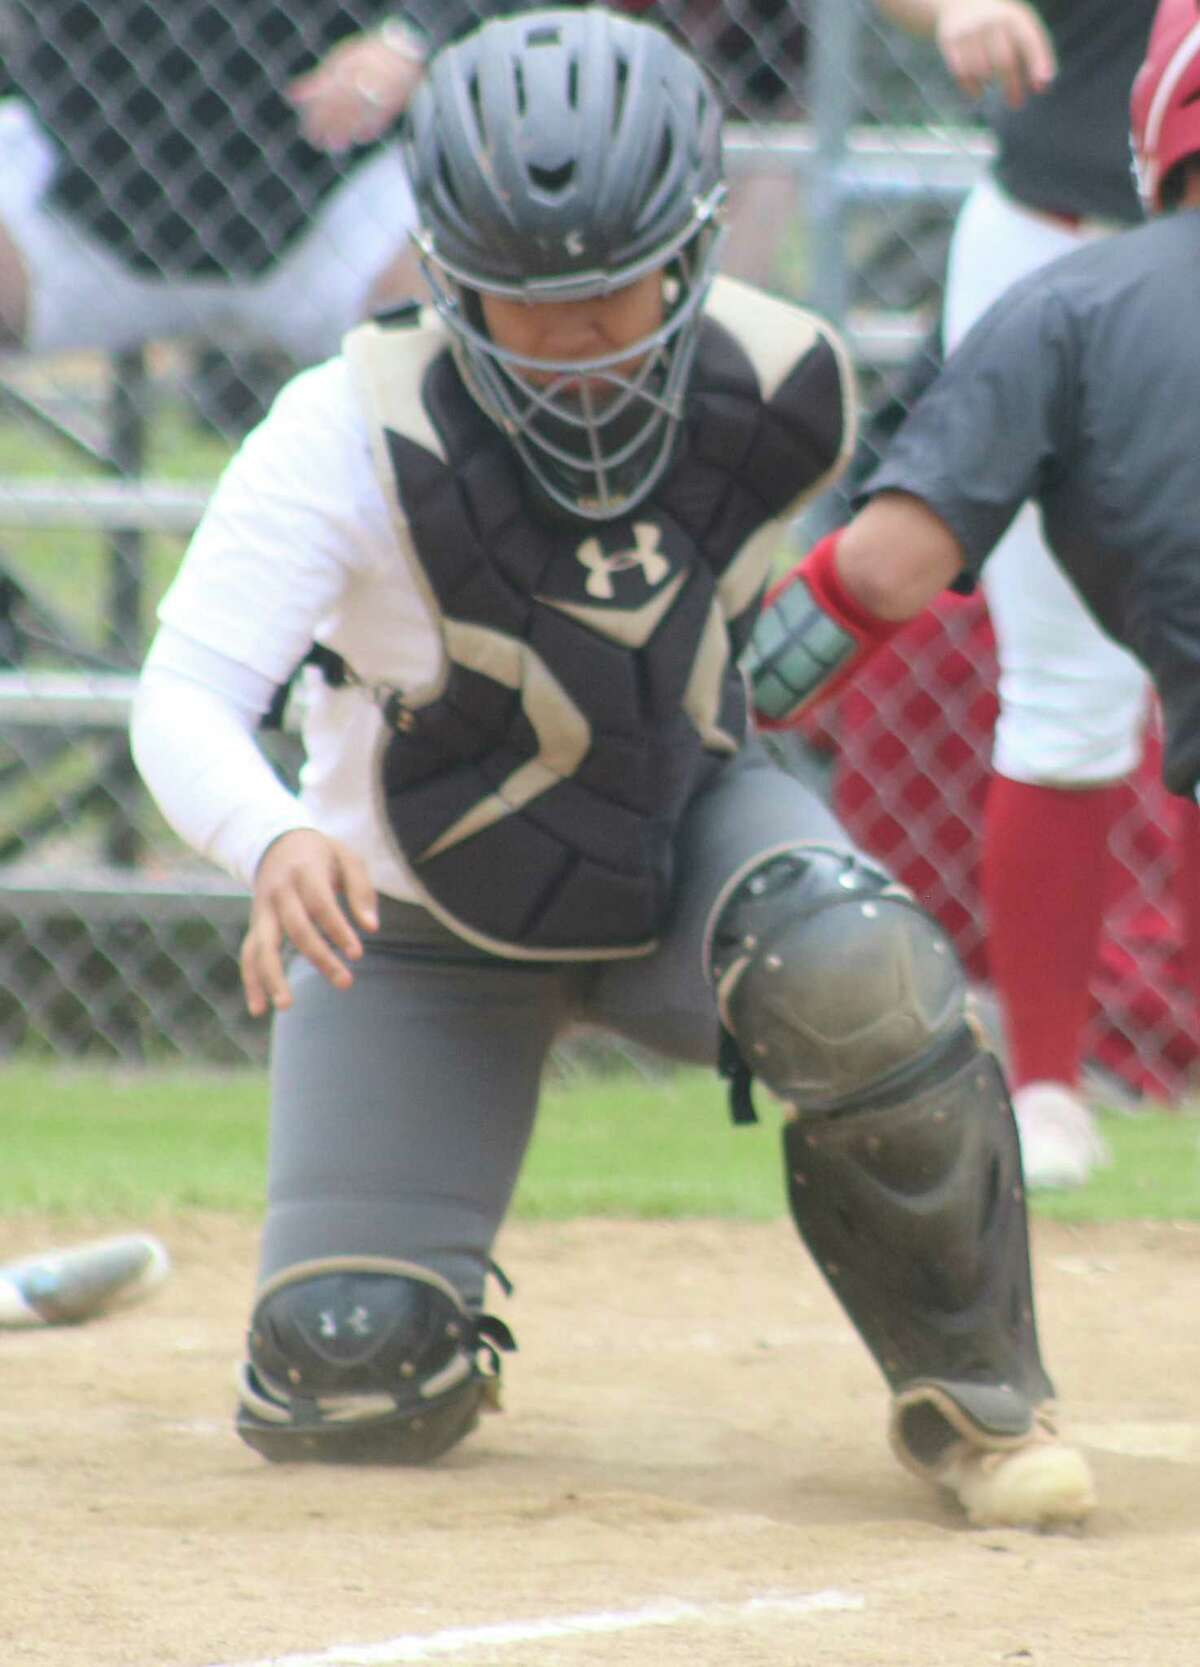 Memorial catcher Maria Andrade secured First Team All-District honors for her efforts in the shortened season this spring.